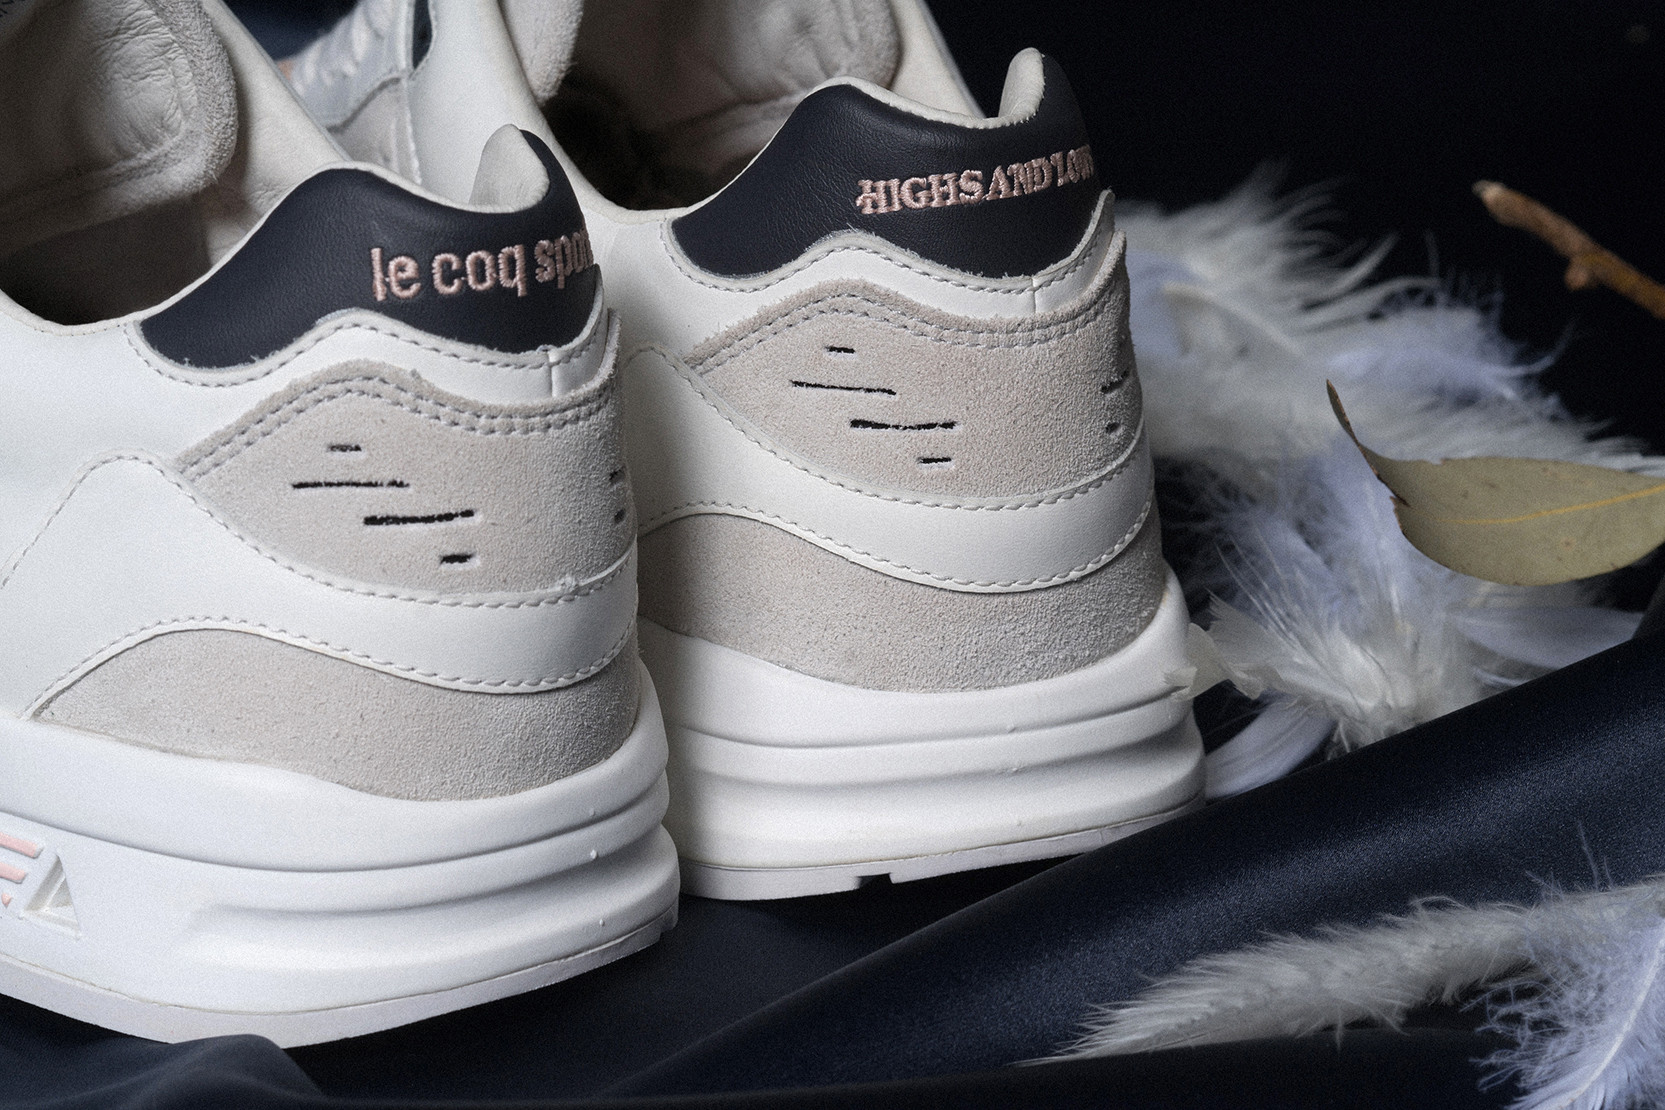 Highs and Lows x Le Coq Sportif LCS R